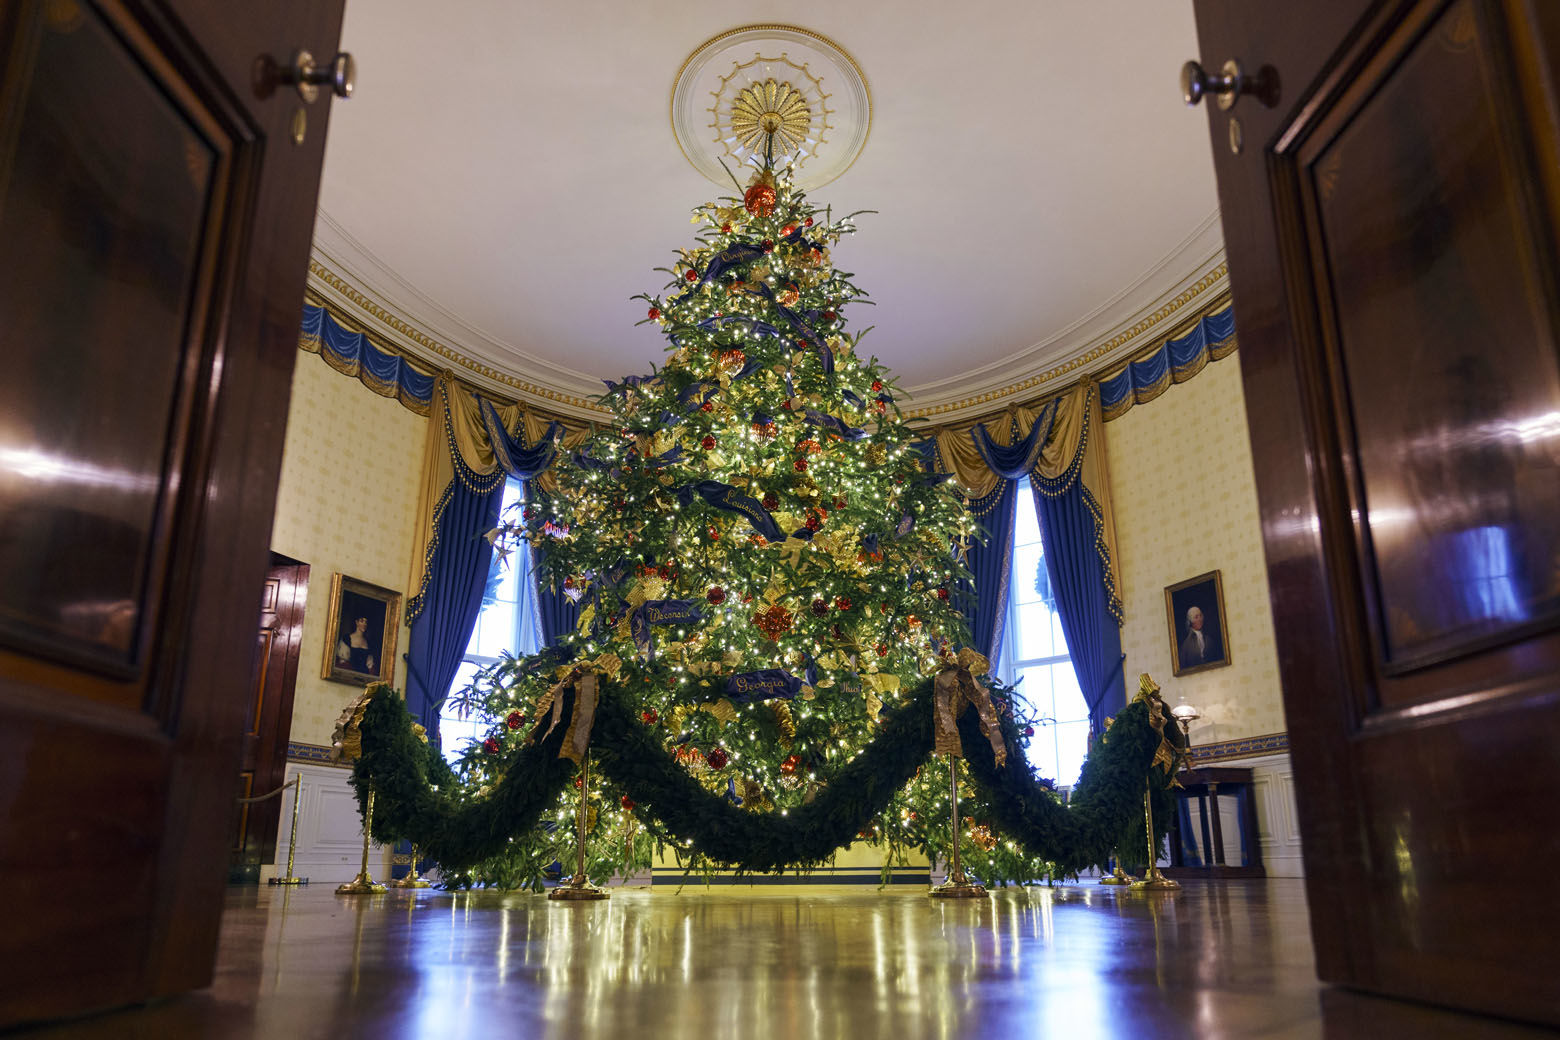 "The official White House Christmas tree is seen in the Blue Room during the 2018 Christmas Press Preview at the White House in Washington, Monday, Nov. 26, 2018. The tree measures 18 feet tall and is dressed in over 500 feet of blue velvet ribbon embroidered in gold with each State and territory. Christmas has arrived at the White House. First lady Melania Trump unveiled the 2018 White House holiday decor on Monday. She designed the decor, which features a theme of ""American Treasures."" (AP Photo/Carolyn Kaster)"